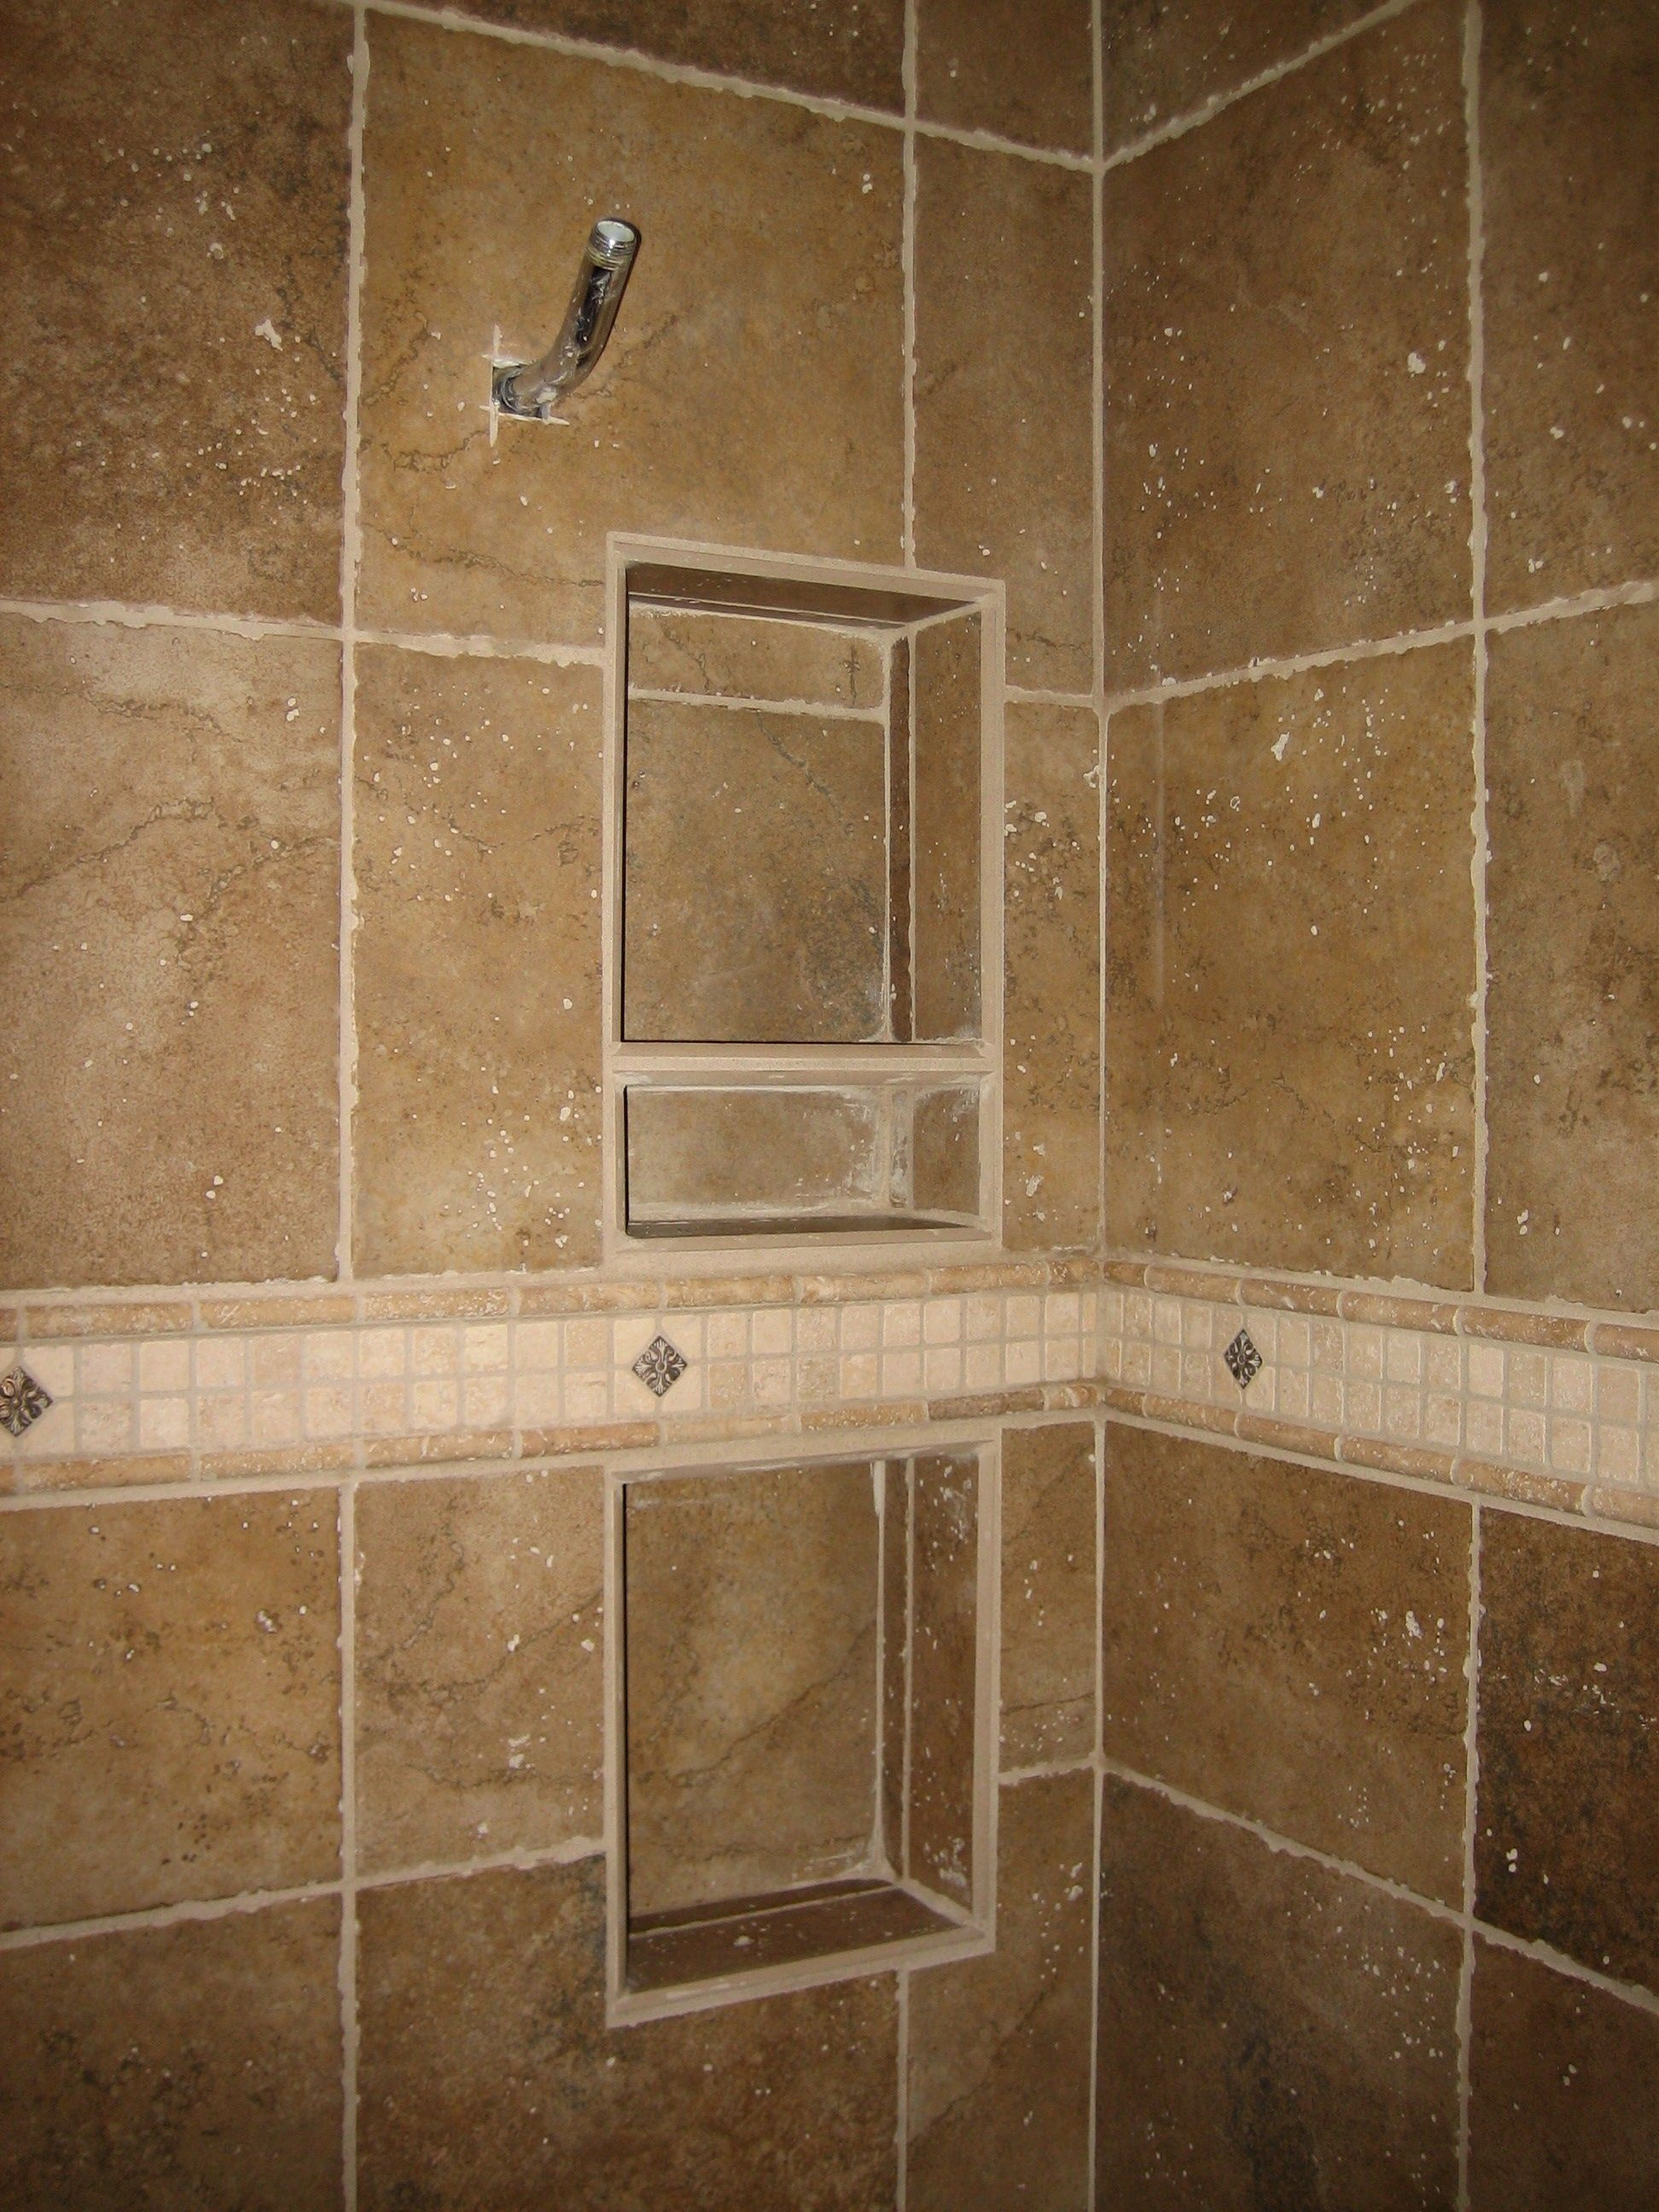 shower shelving and specialty band